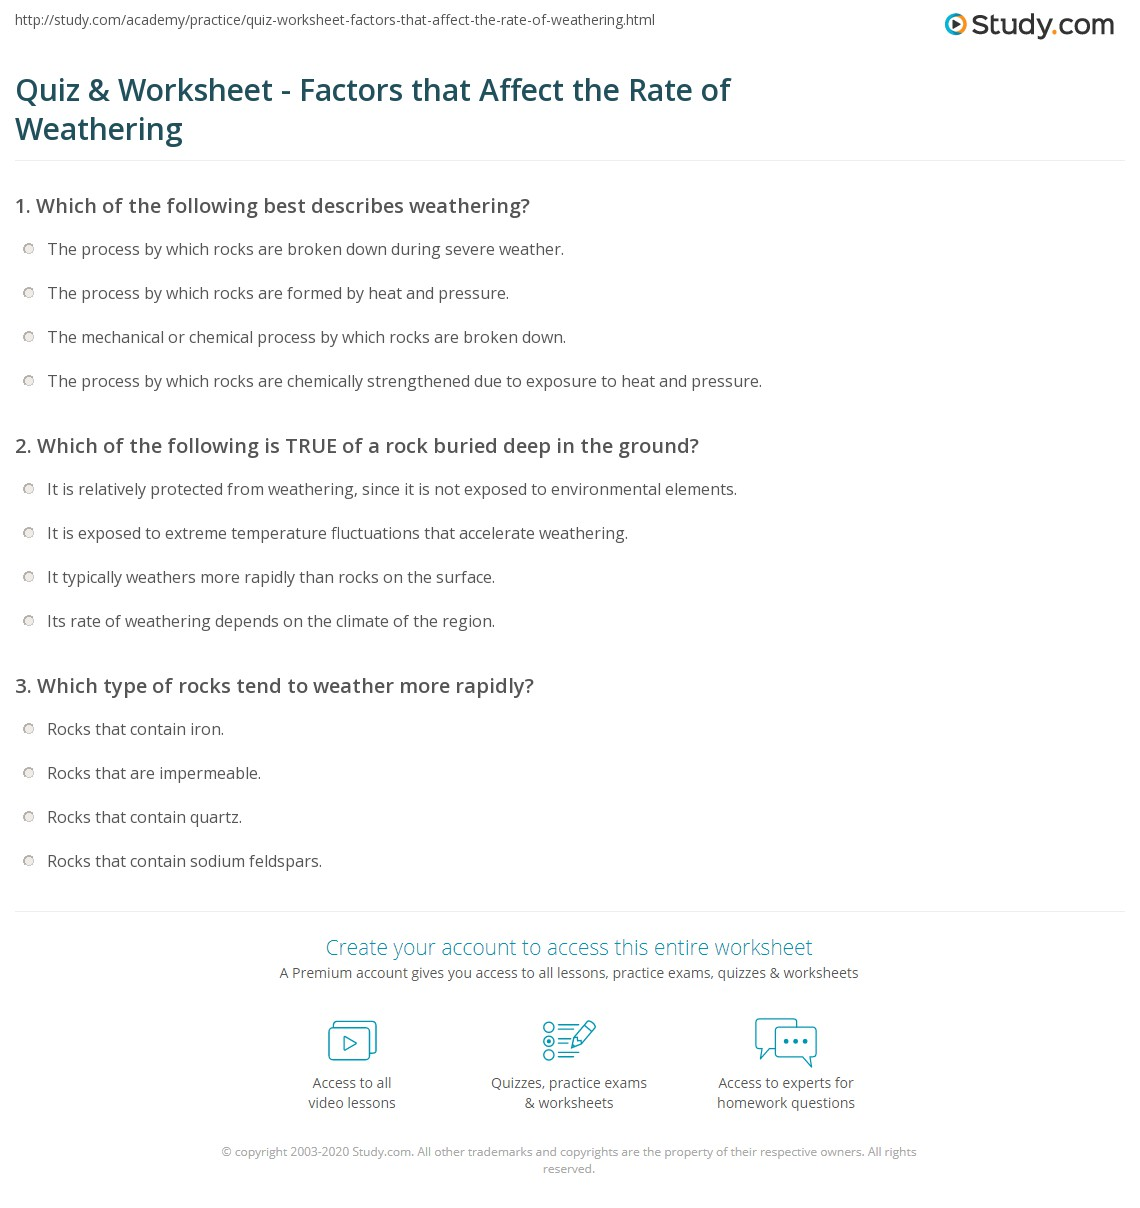 Worksheets Factors Affecting Climate Worksheet quiz worksheet factors that affect the rate of weathering print worksheet